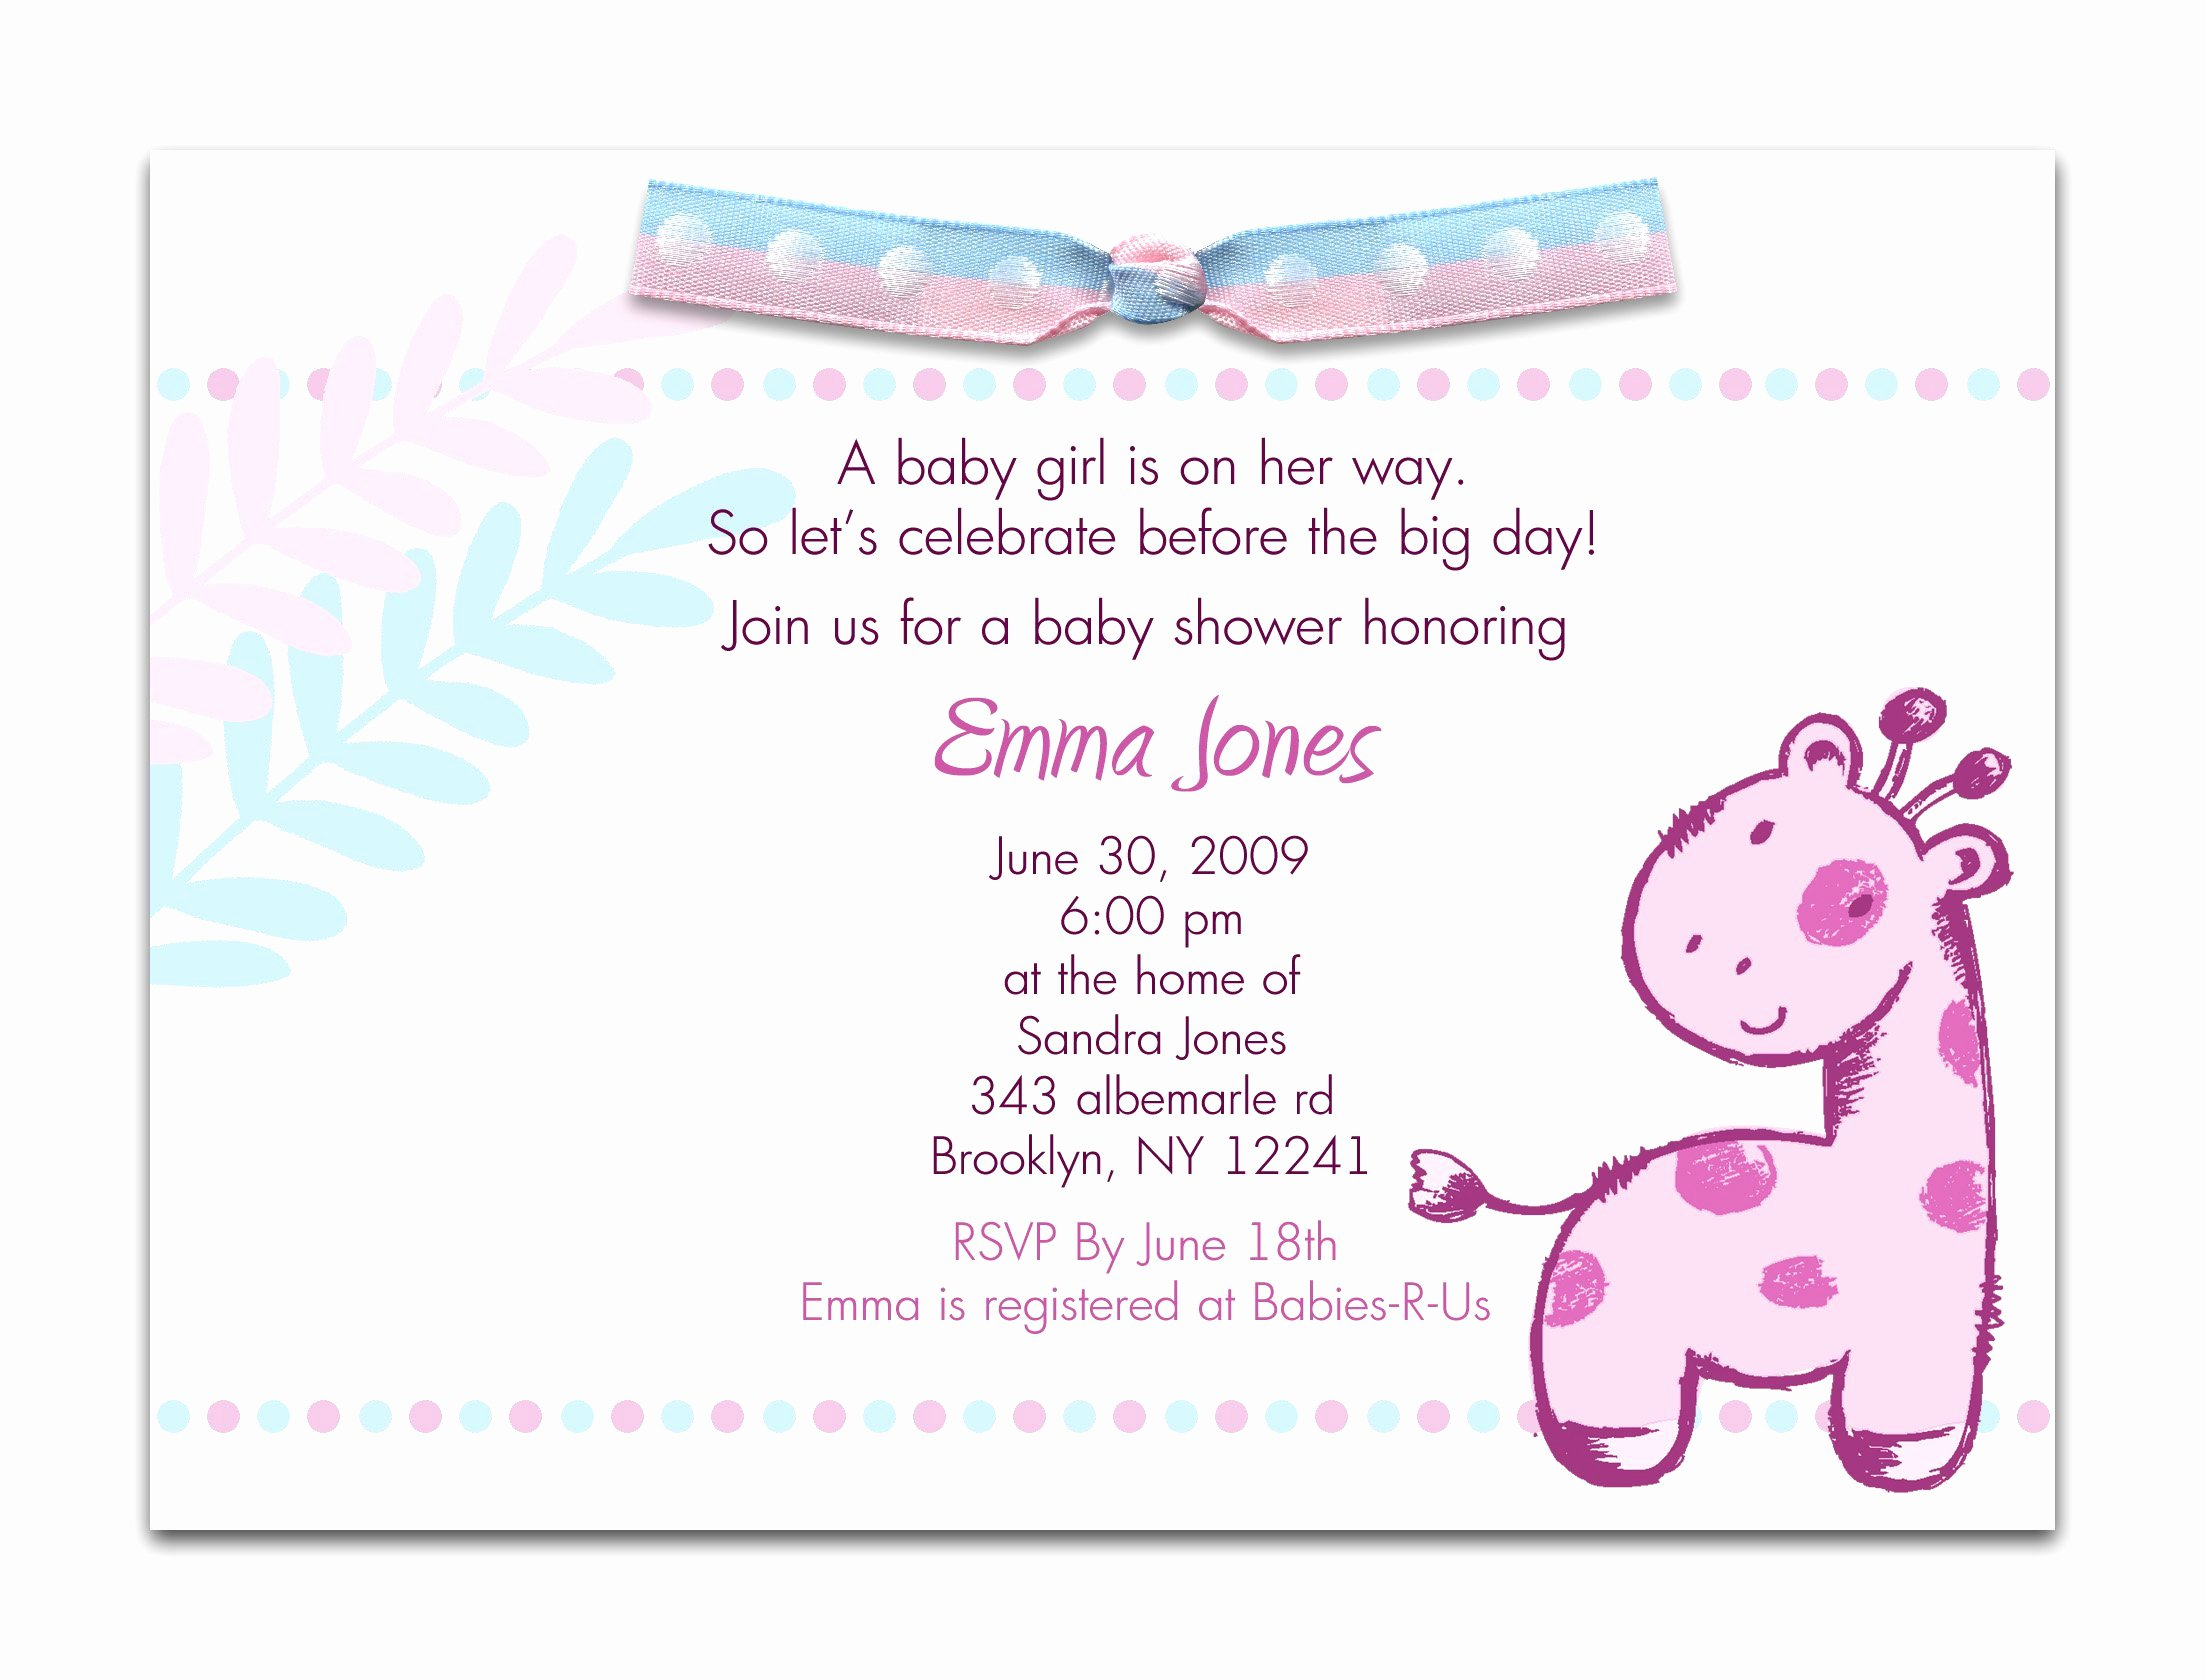 Sample Baby Shower Invitations Fresh Birthday Invitation Mickey Mouse Birthday Invitations